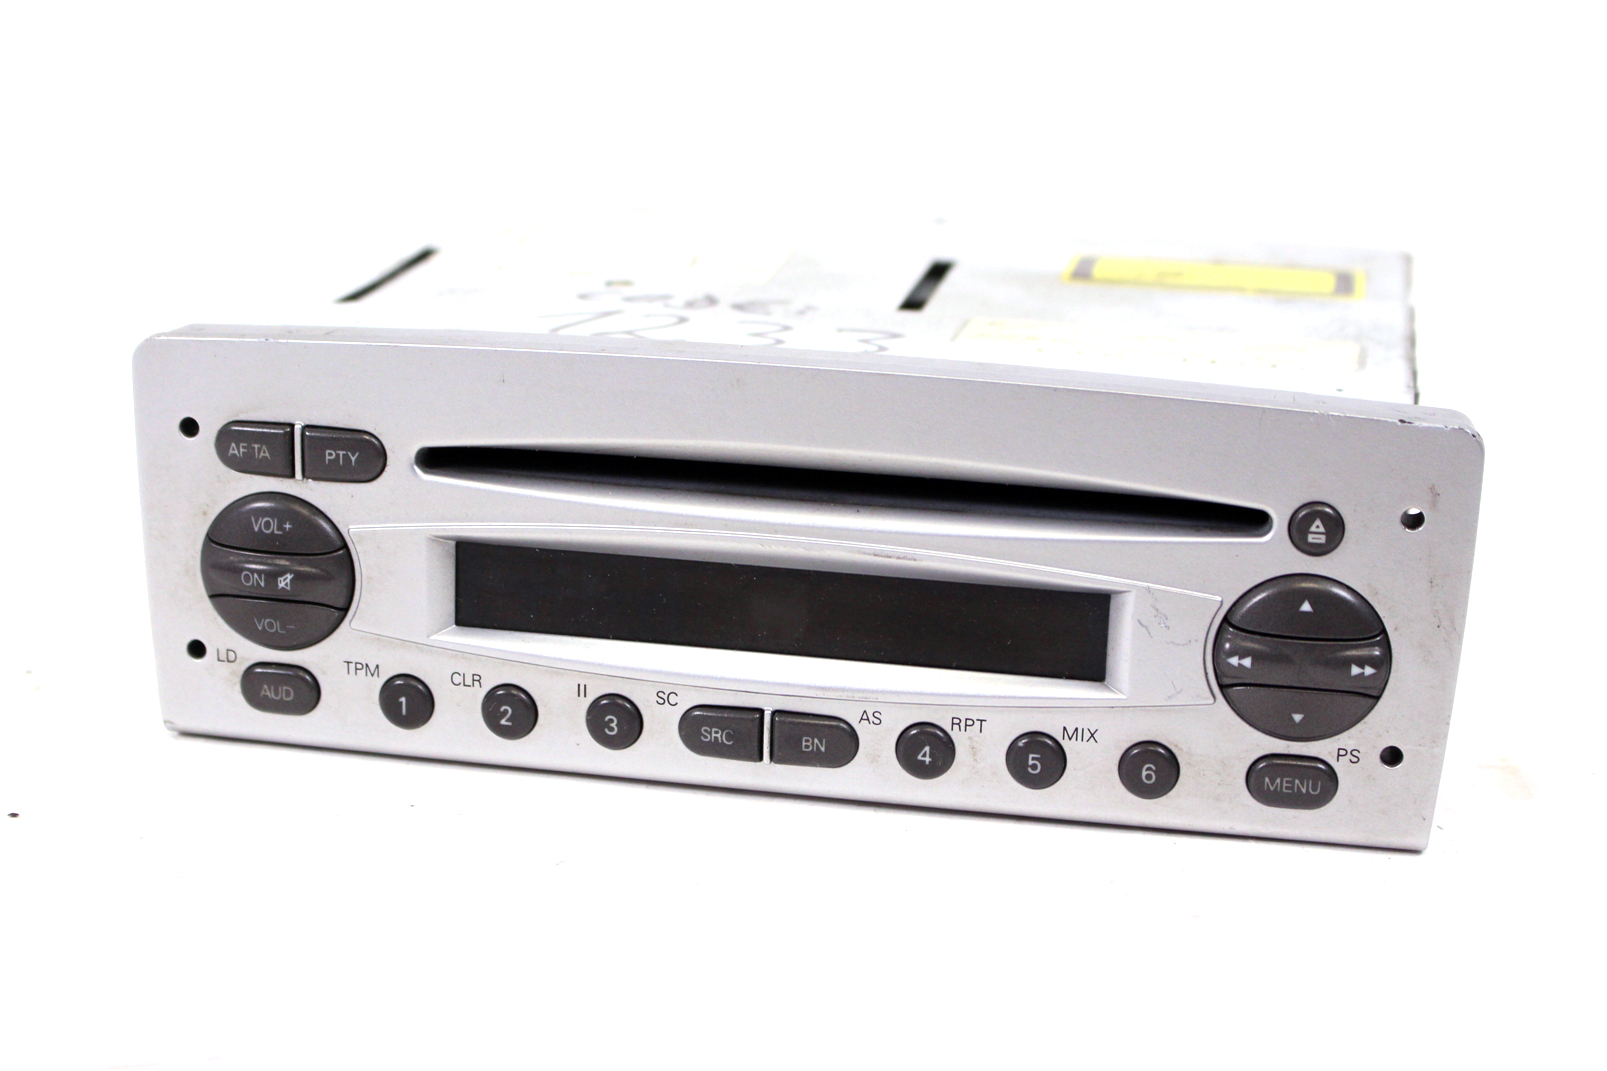 blaupunkt autoradio alfa romeo 156 radio high cd player. Black Bedroom Furniture Sets. Home Design Ideas